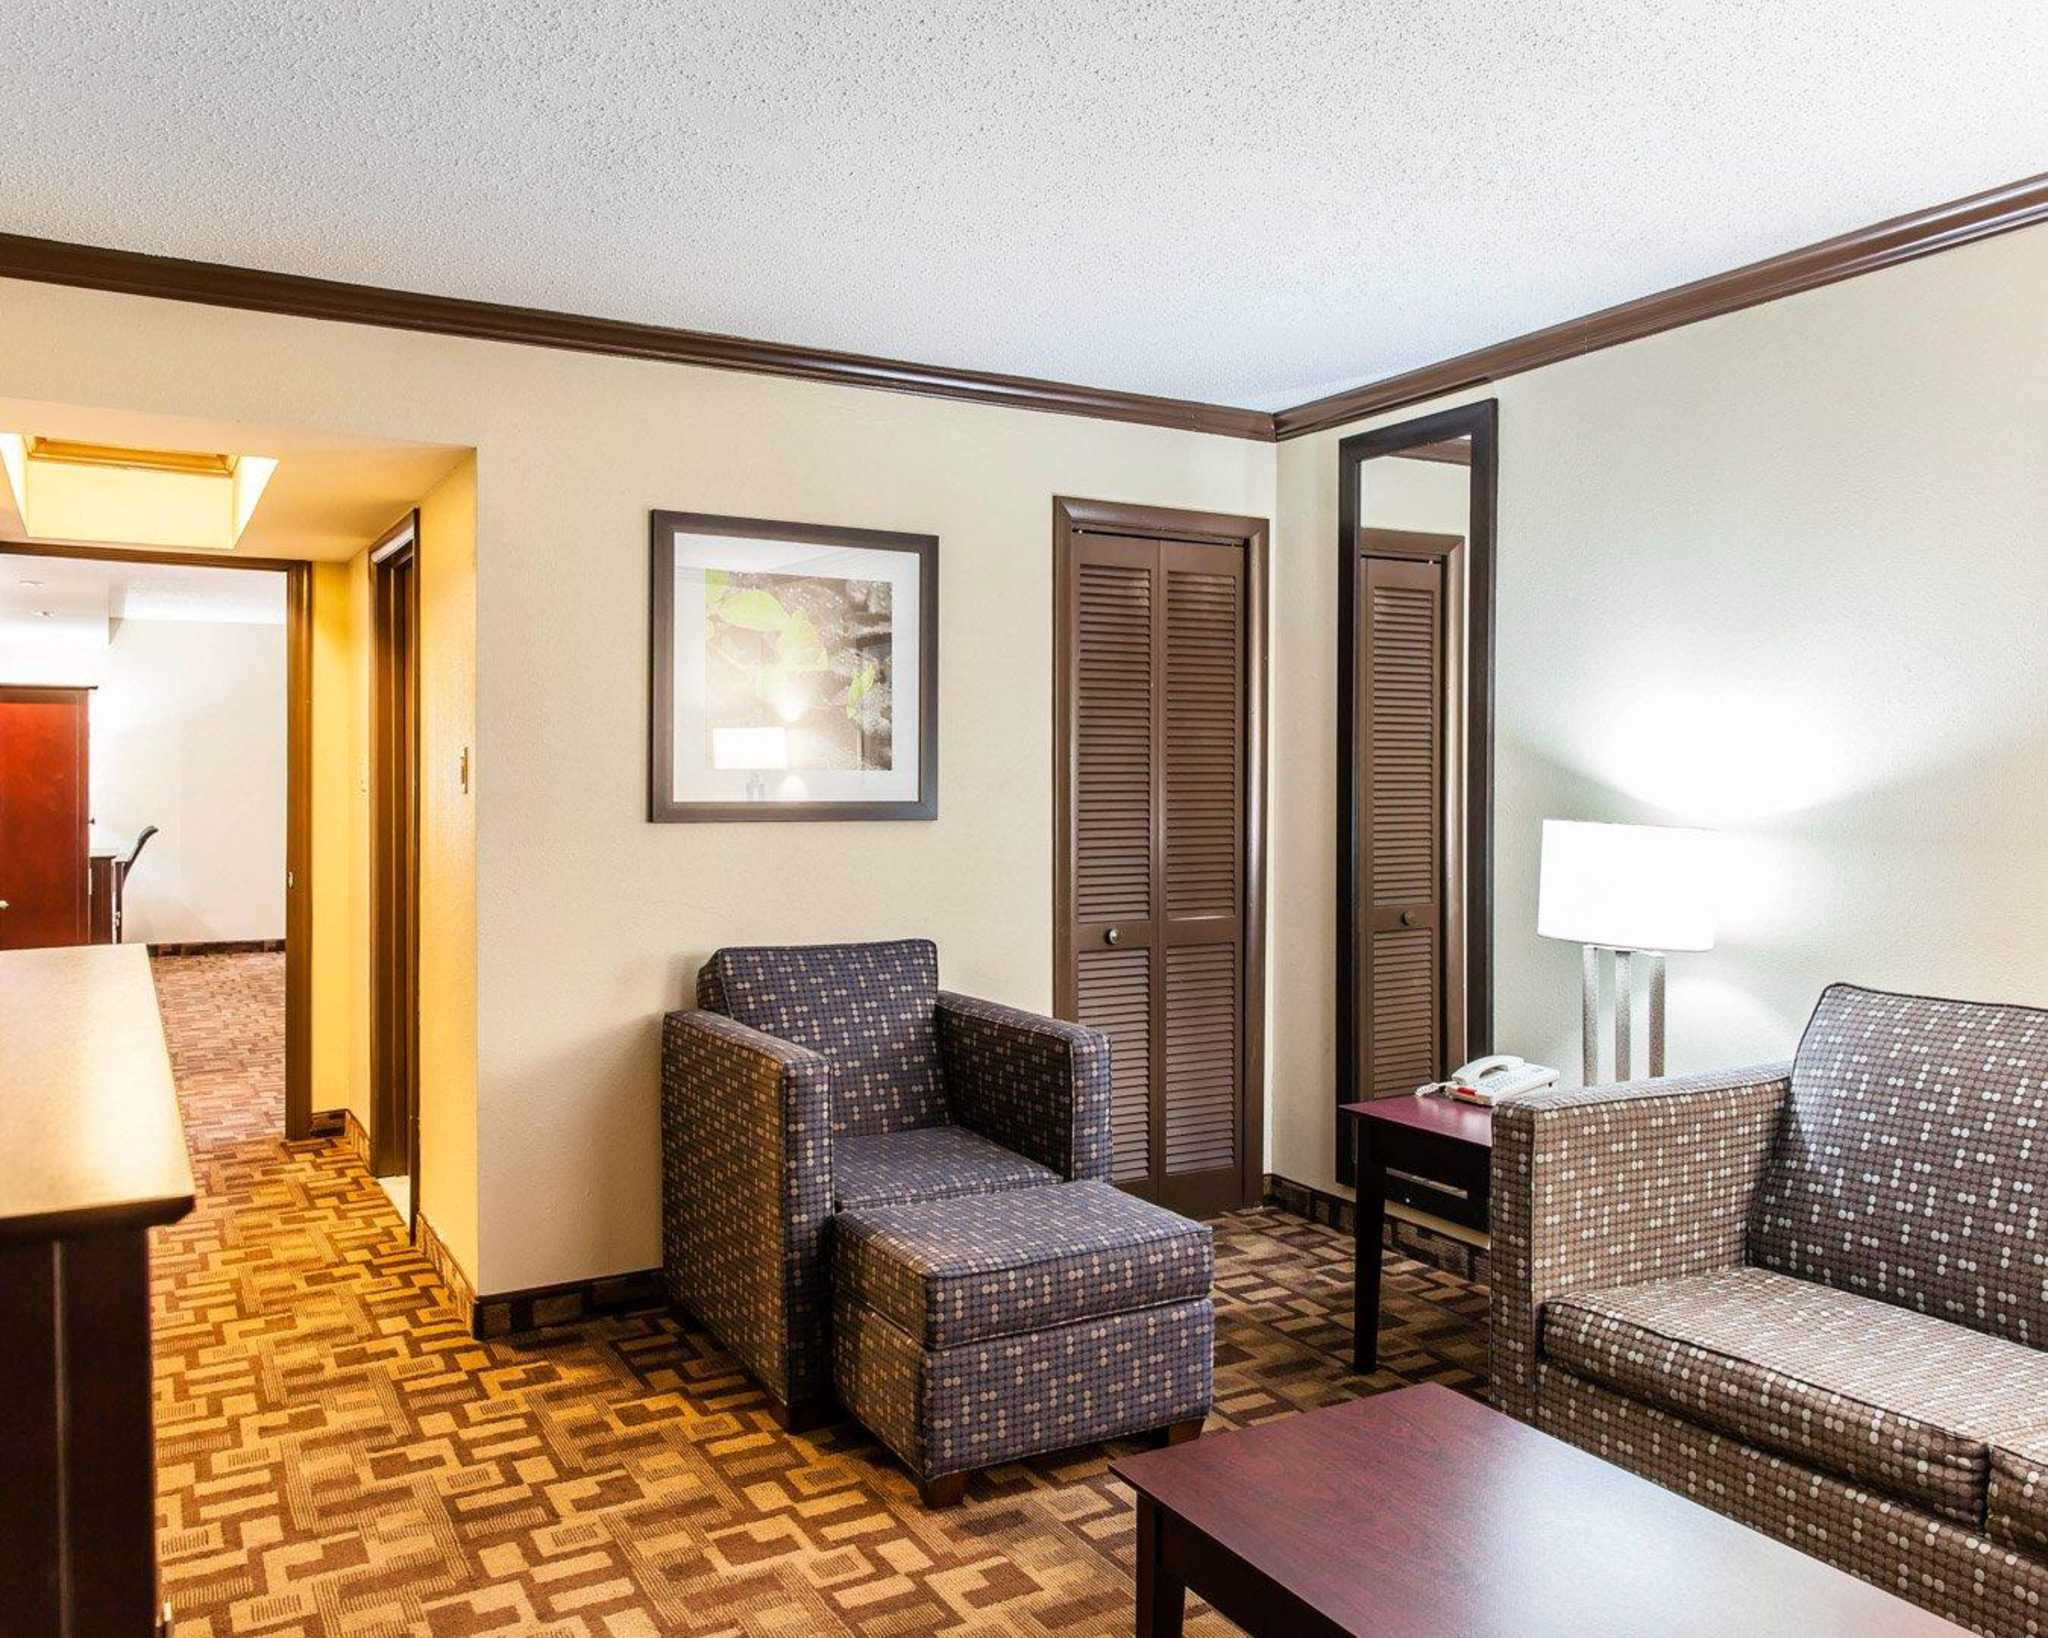 Quality Inn & Suites image 9